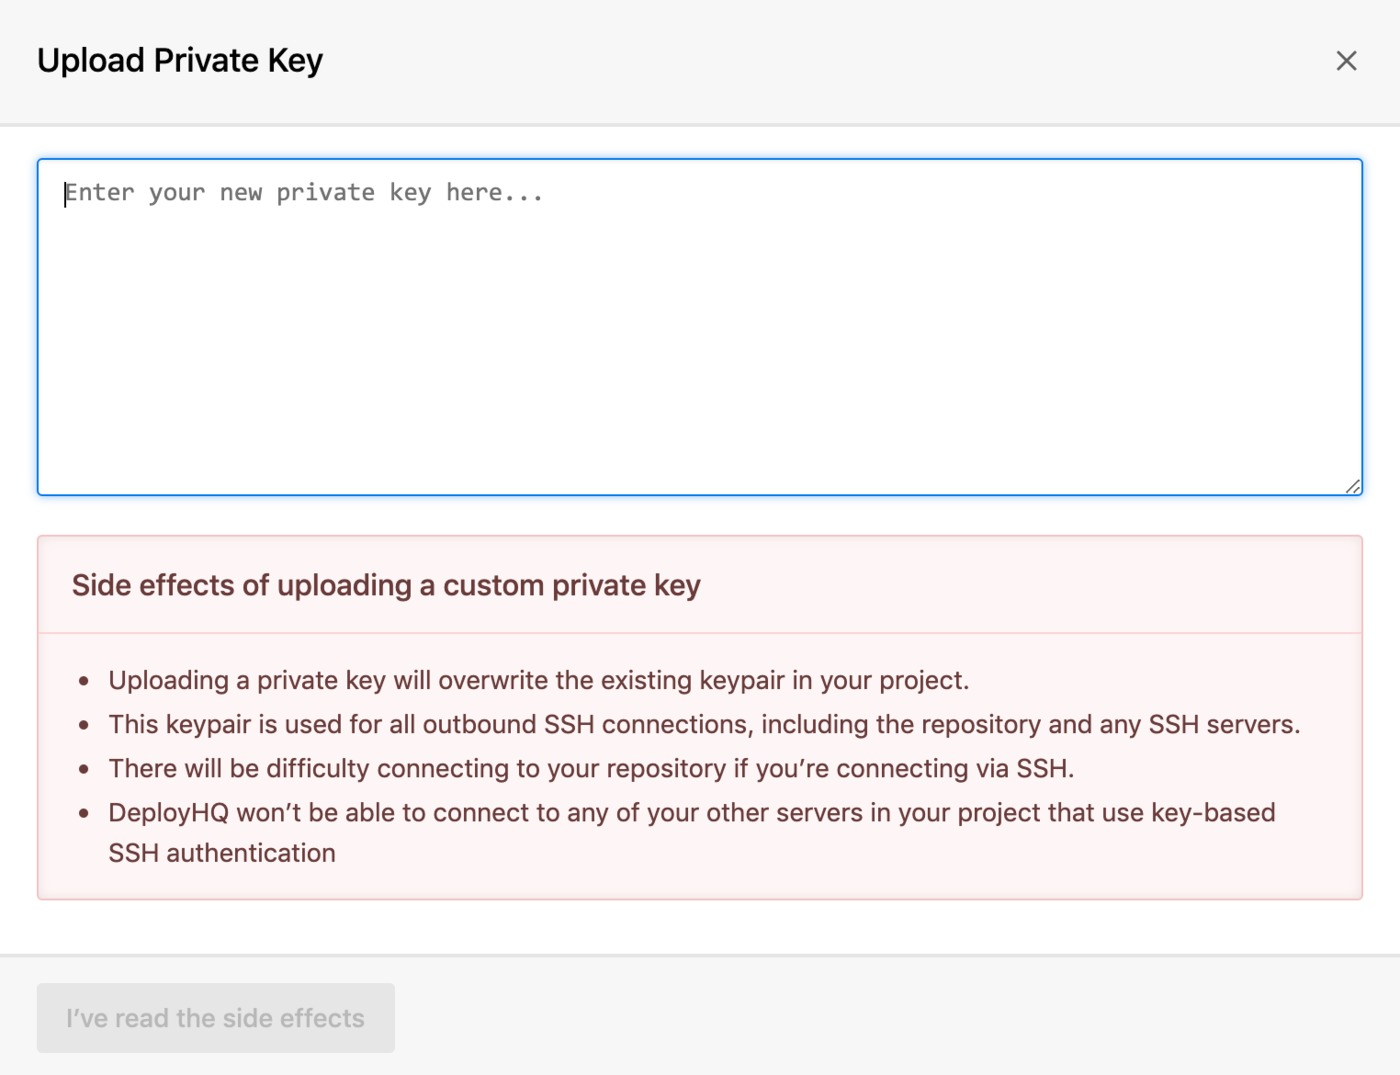 Upload a private key